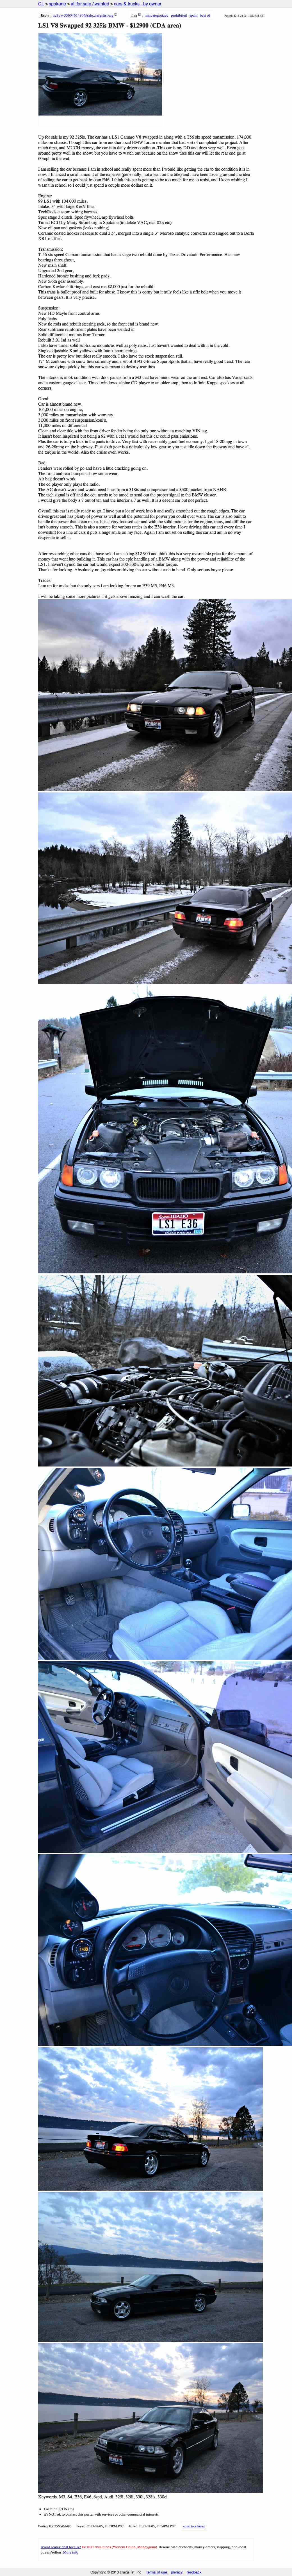 For 12900 Could This E36 Be The Ls1 You Scama Engine Wiring Harness Spokane Craigslist Or Go Here If